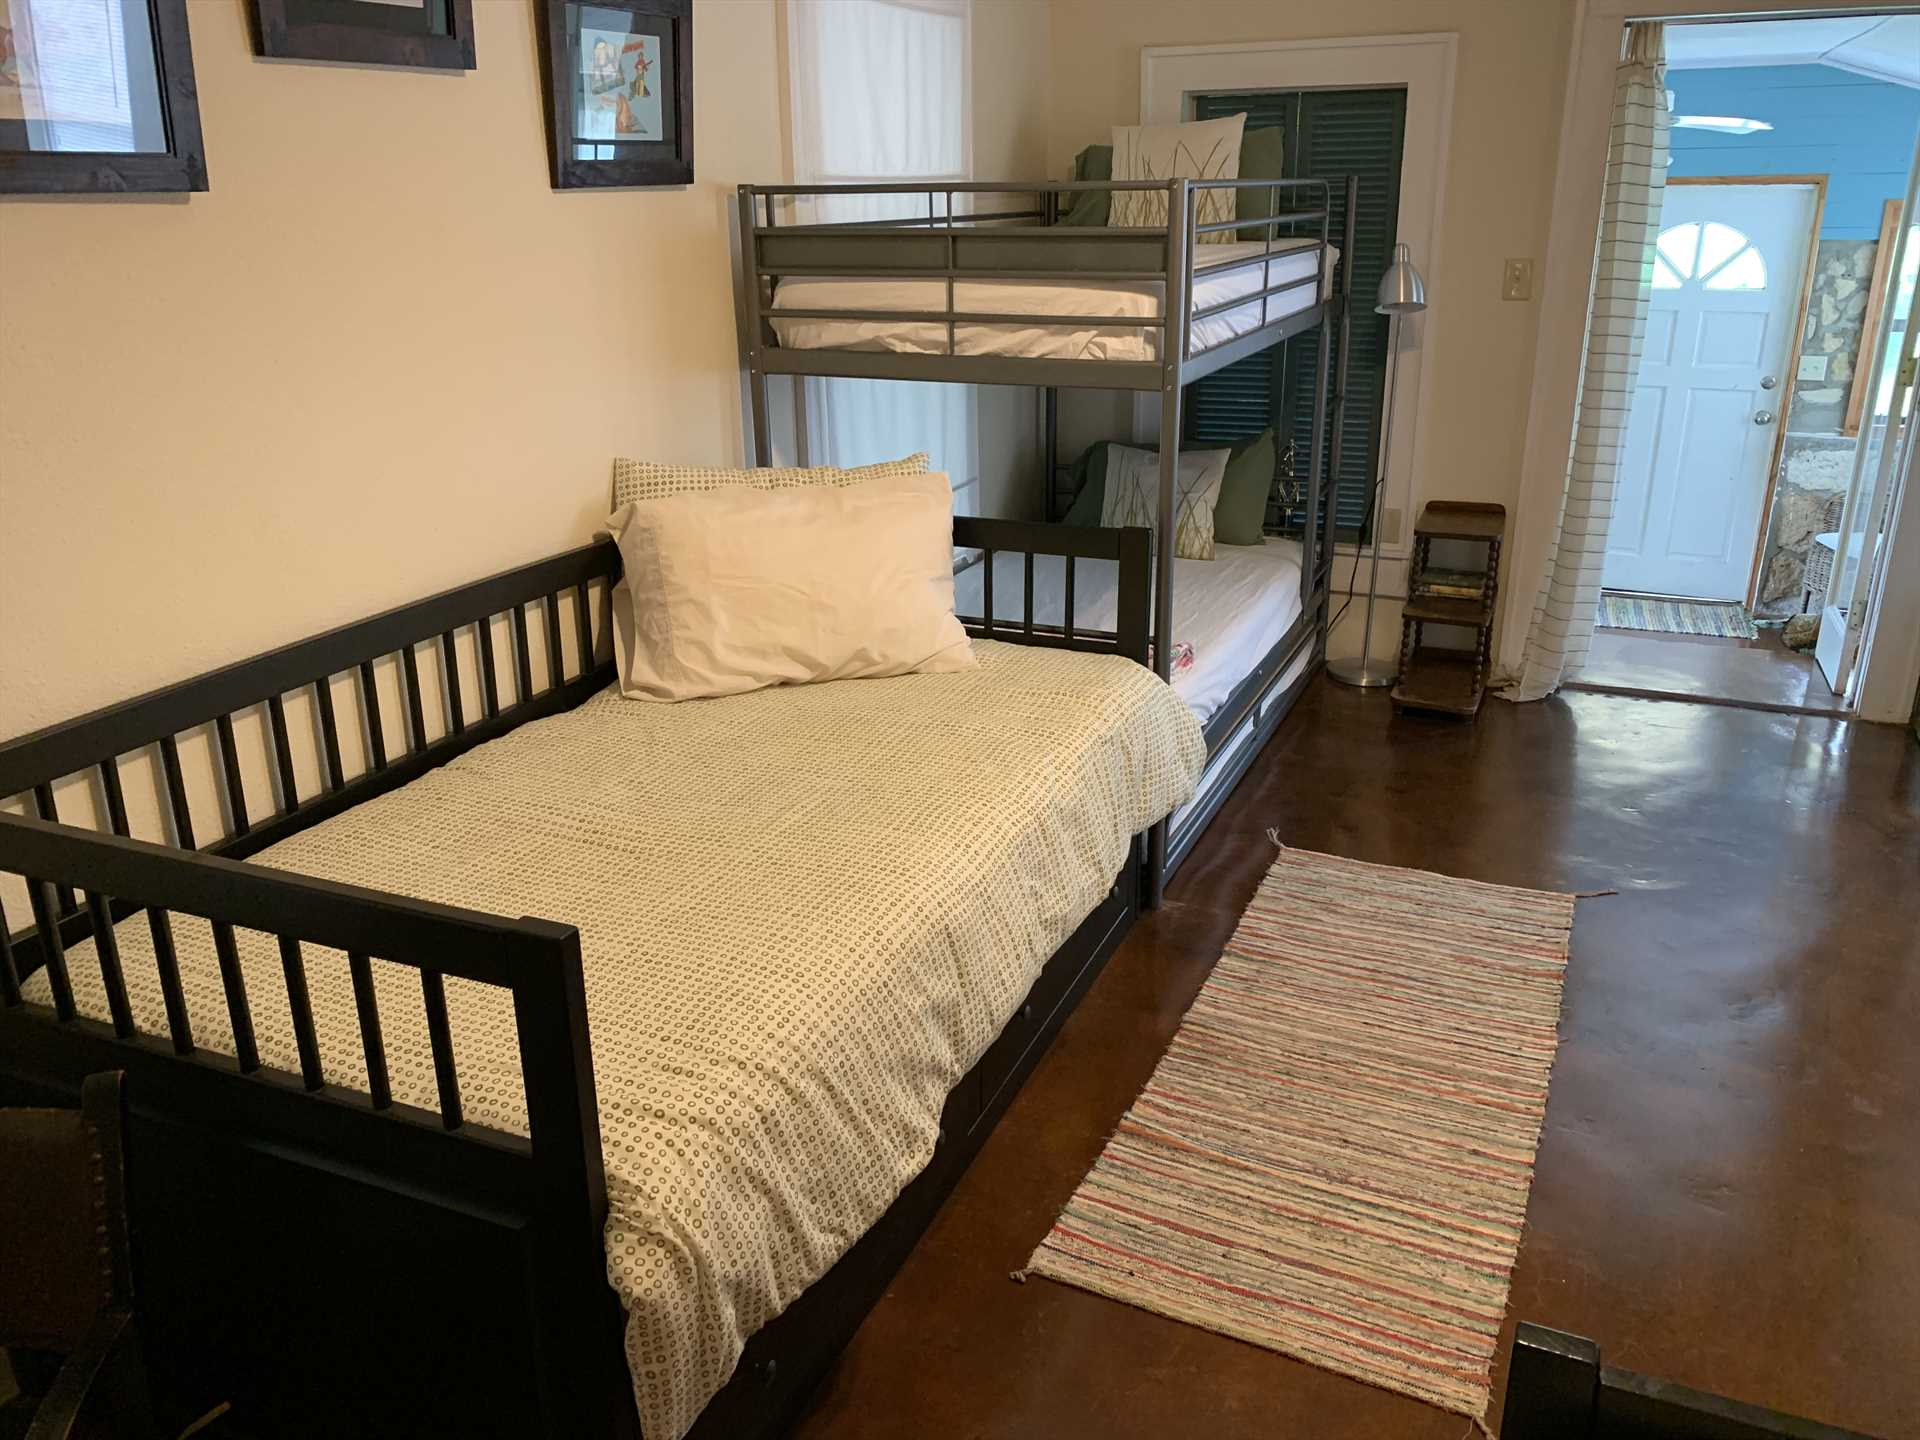 The bunk beds are a fun highlight on this kid-friendly property!